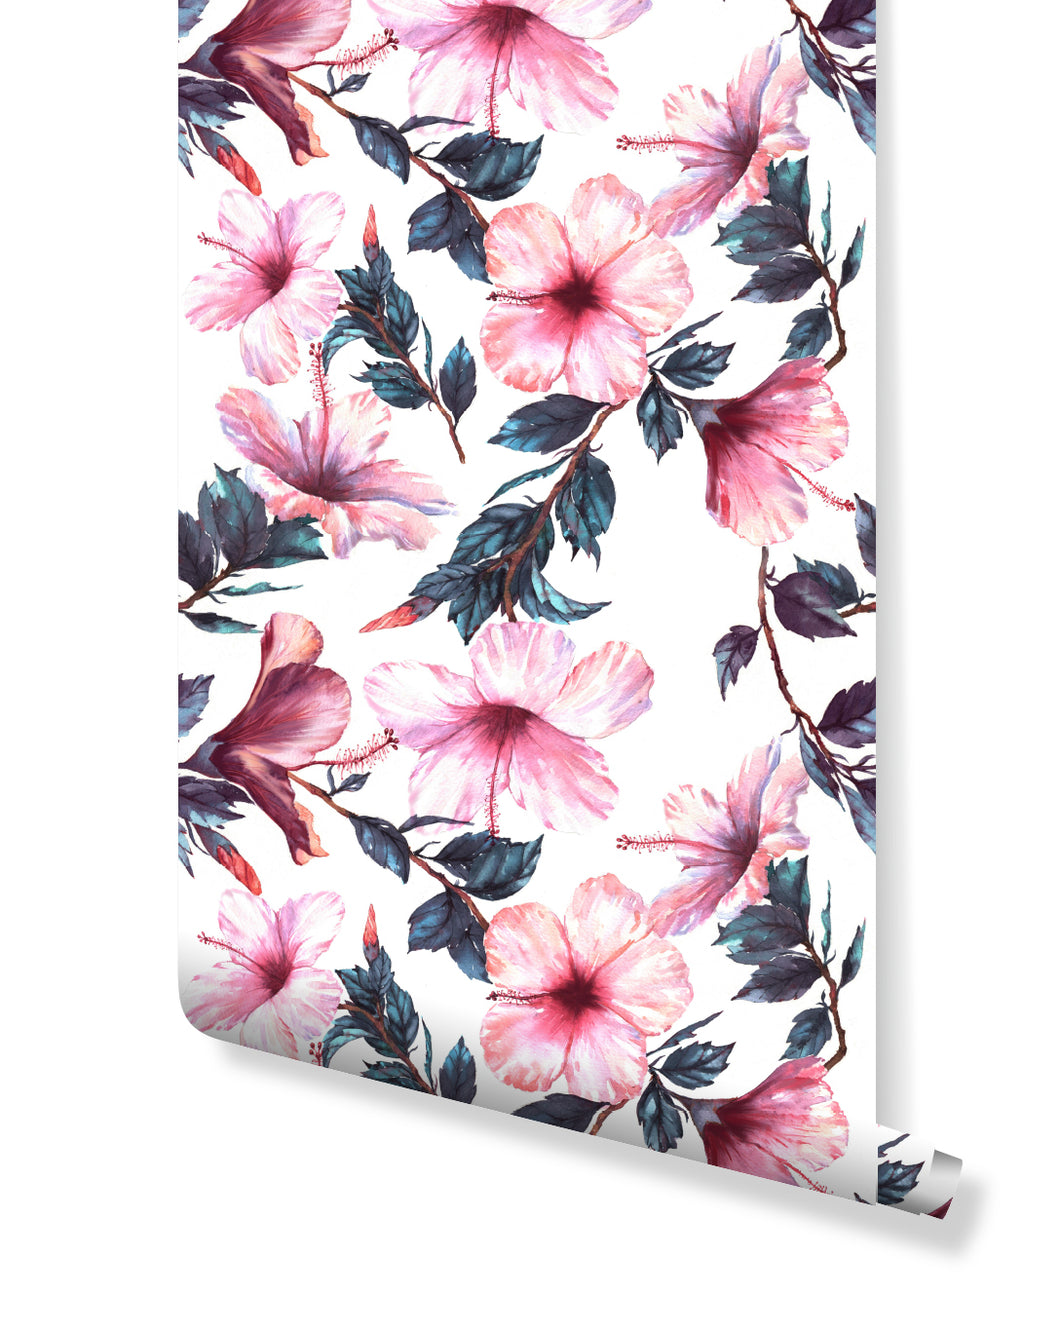 Temporary Removable Wallpaper Large Hibiscus Peel and Stick Floral Wall Mural Self Adhesive Wall Paper with Pink Flowers Accent CC054